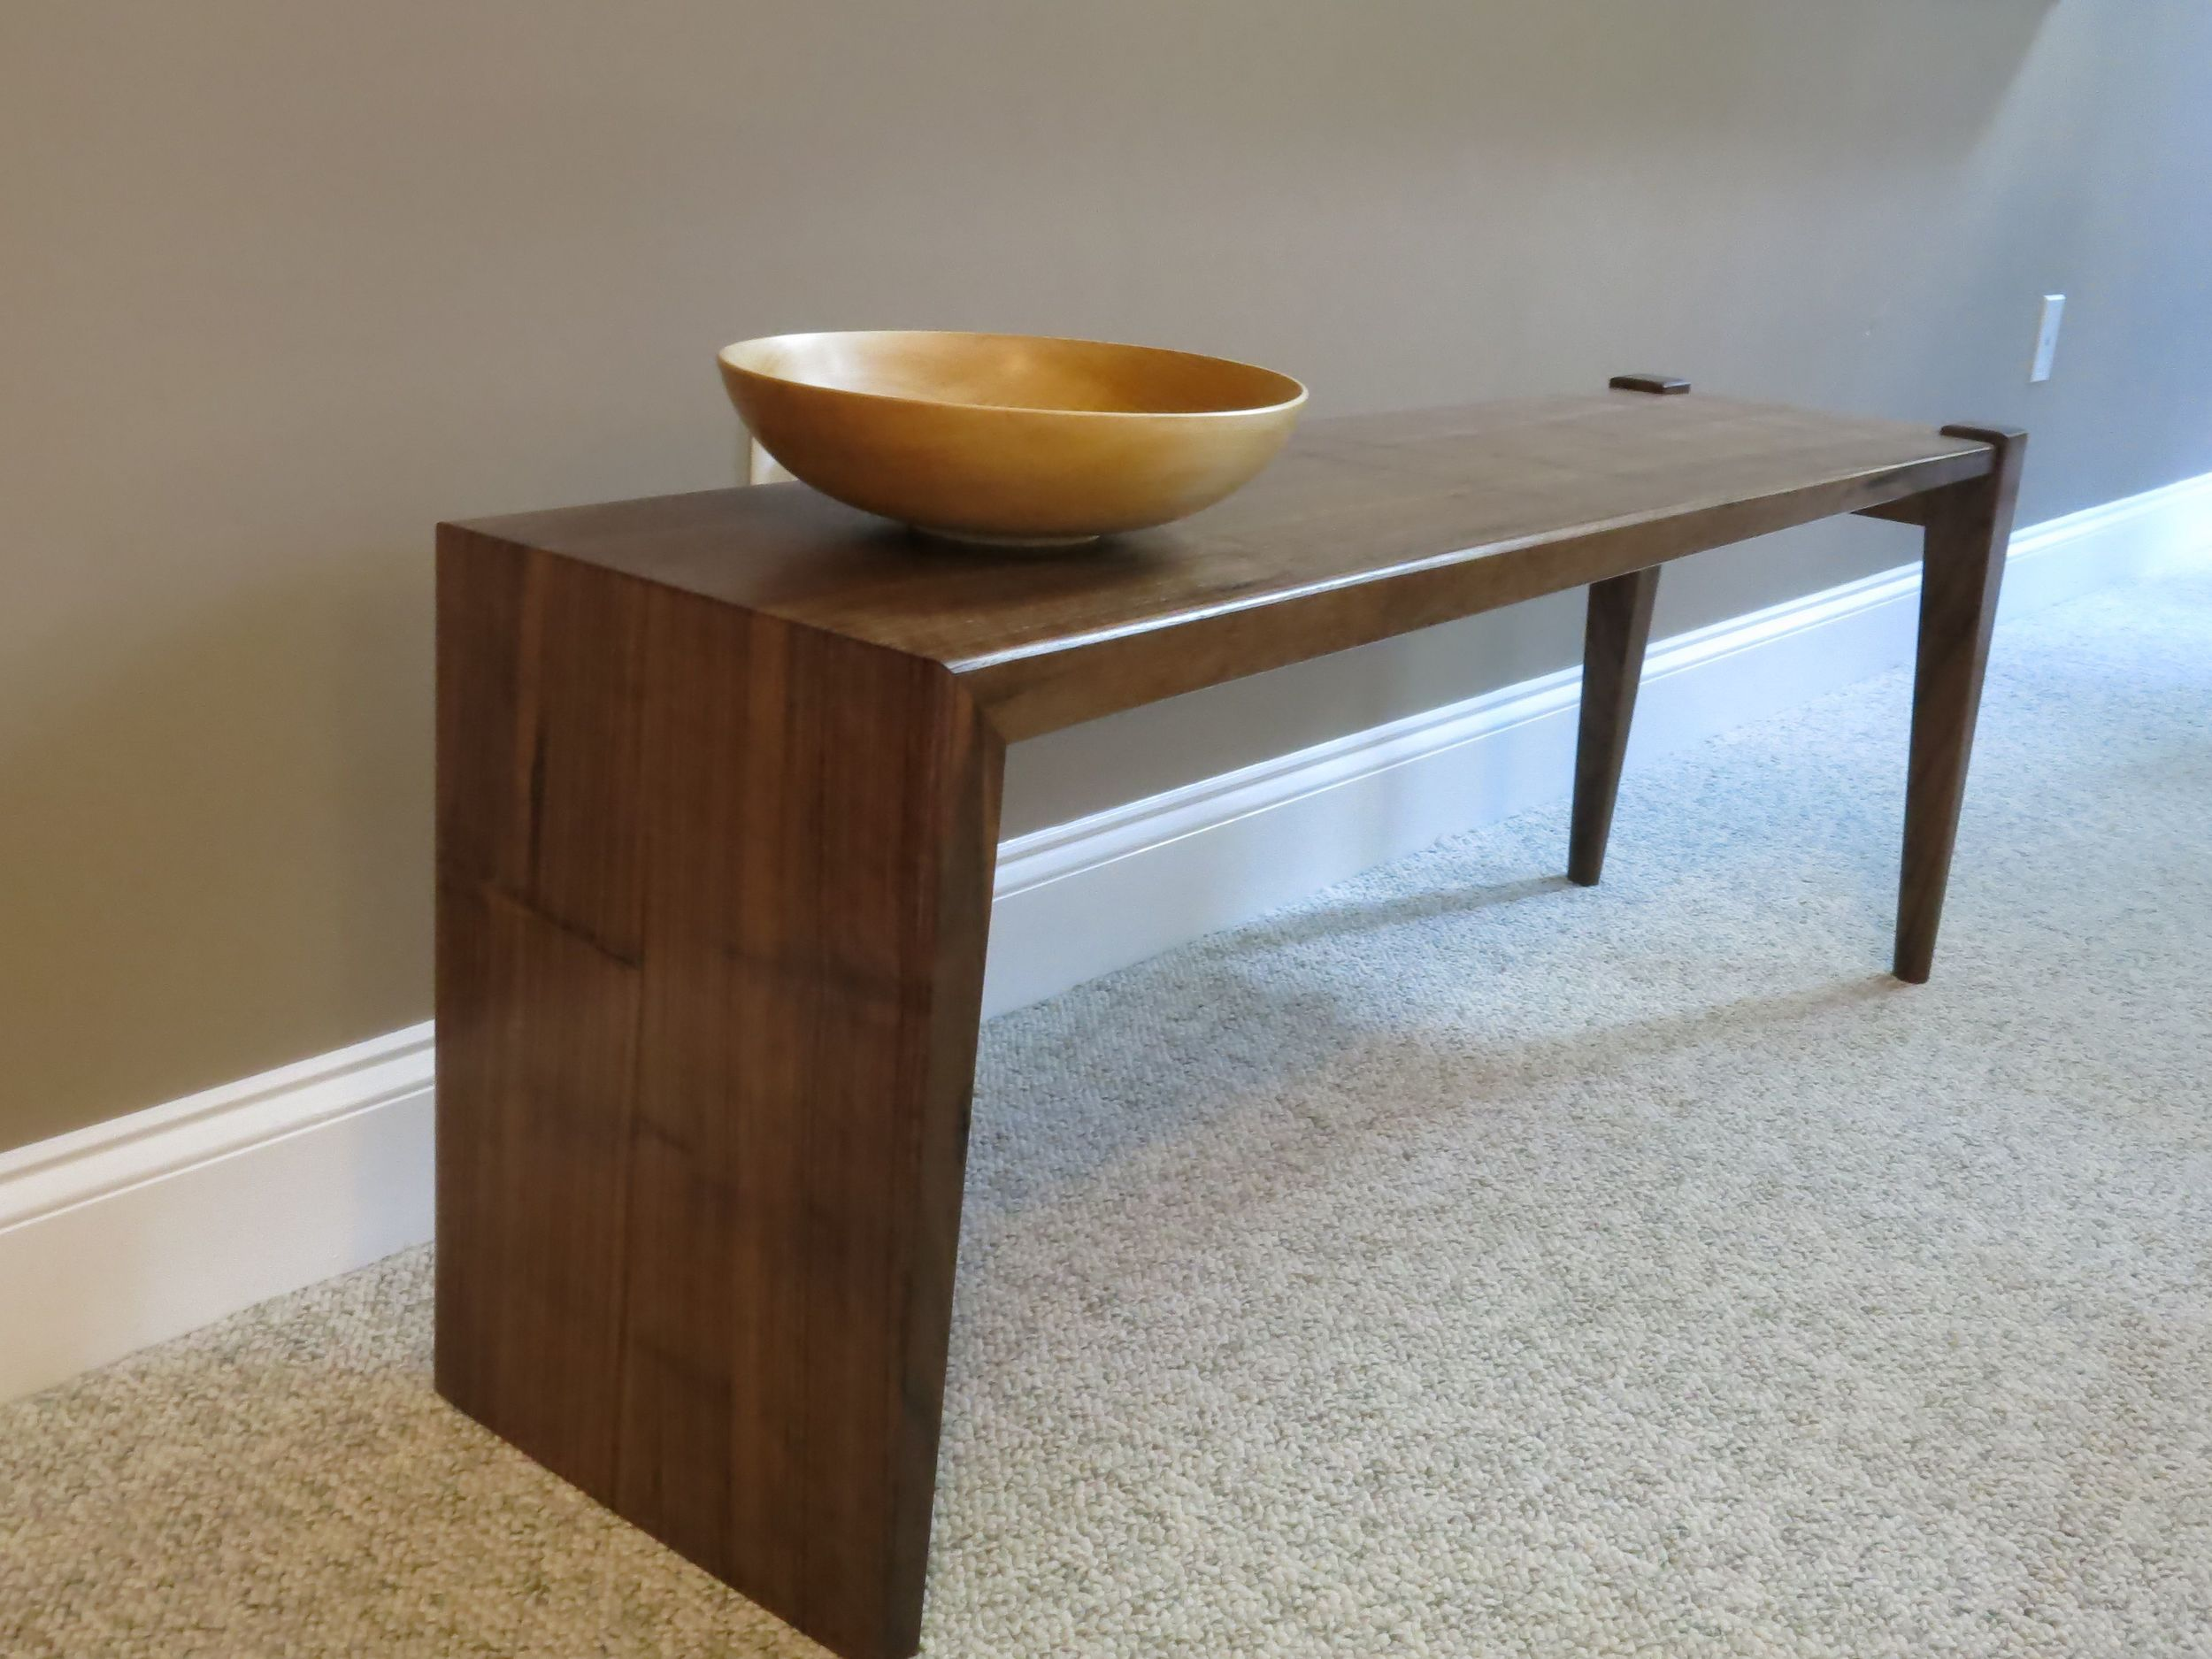 Quartersawn Walnut bench (2015)